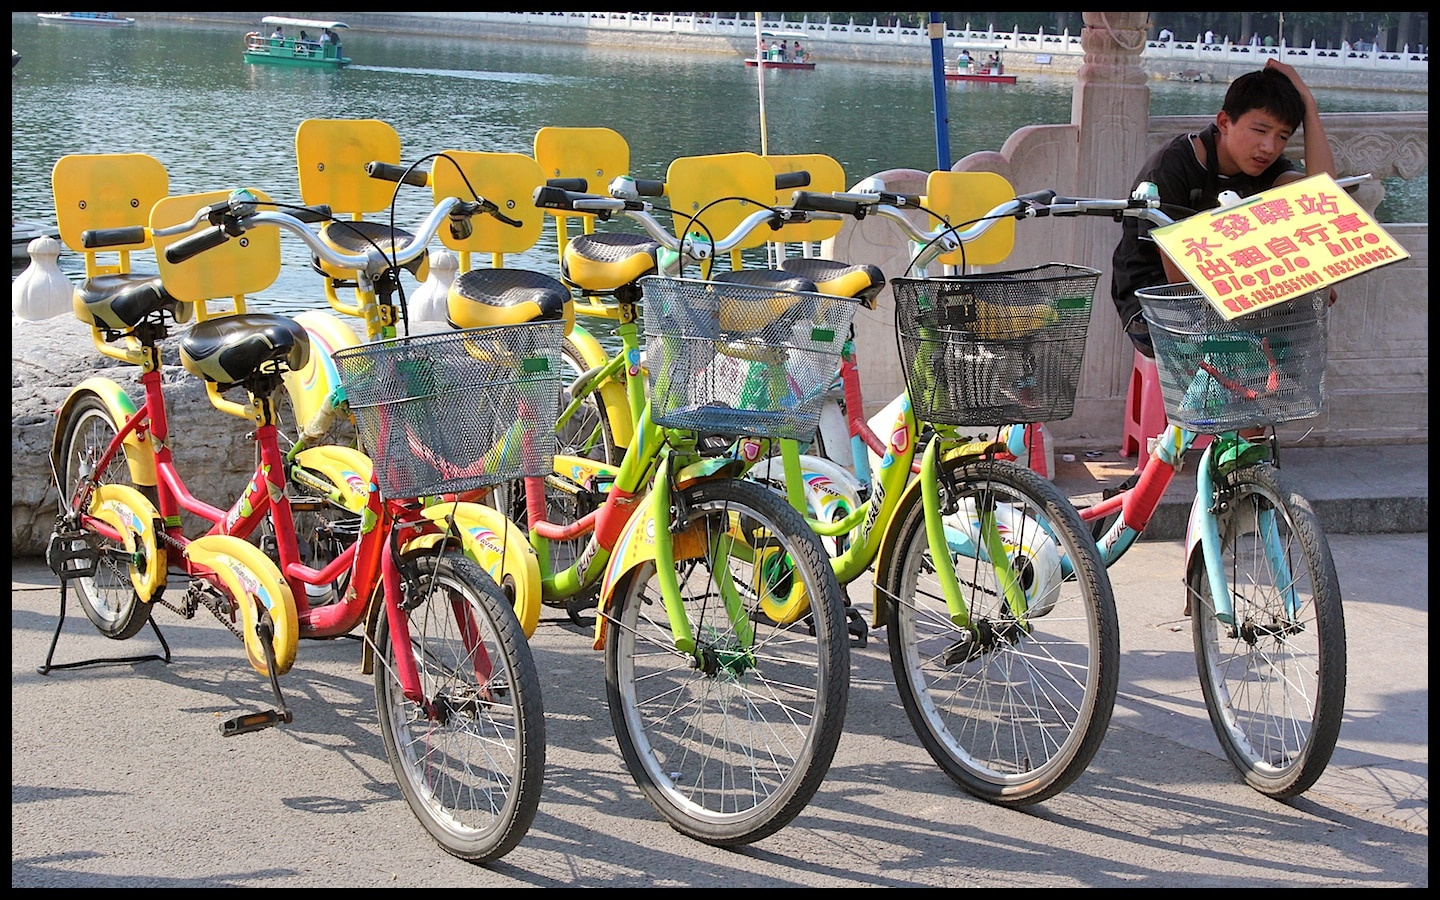 Bicycles for hire in Beijing's Beihai Park